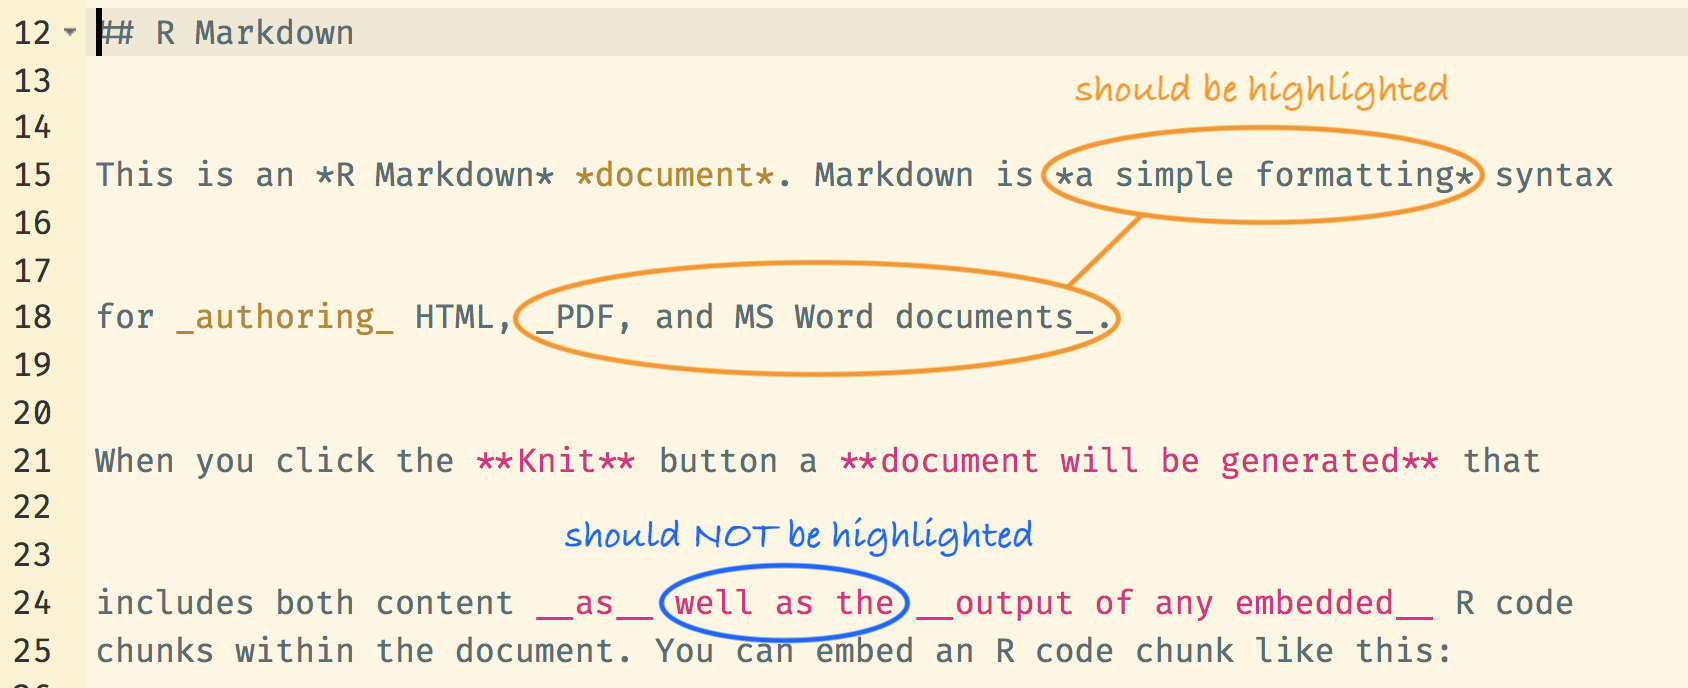 RMarkdown italic+bold highlighting is incorrect · Issue